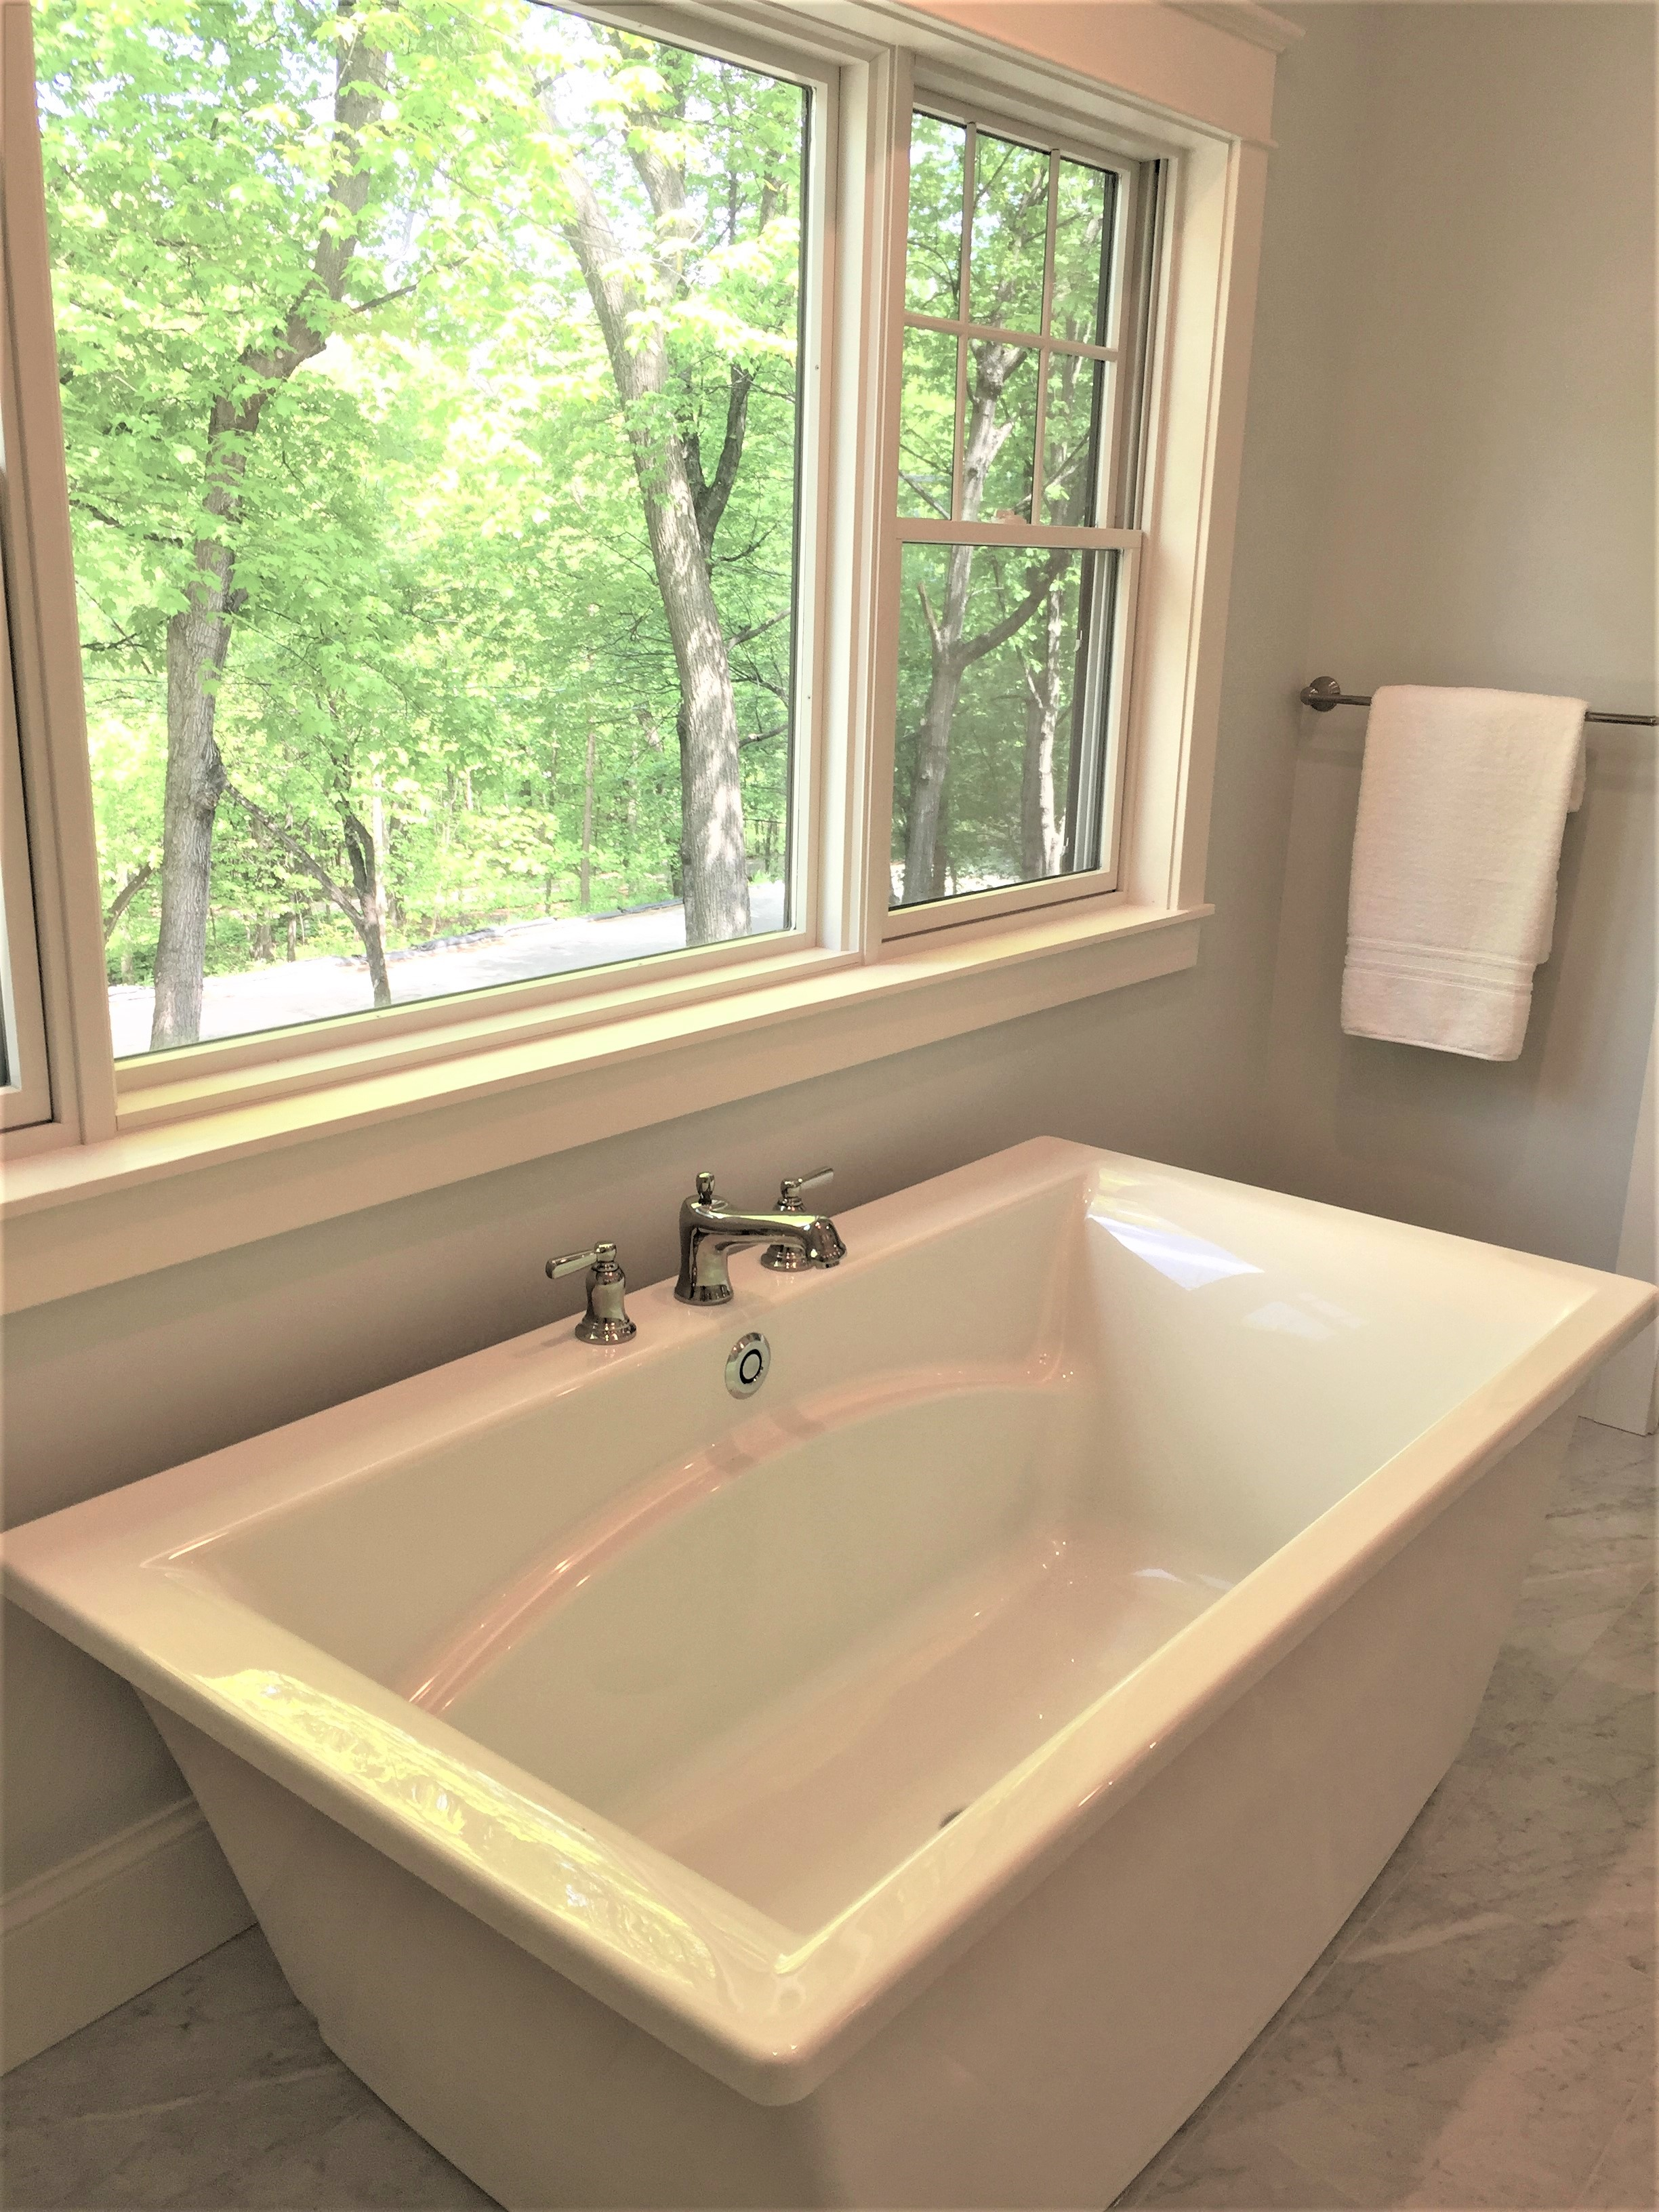 Tub in master bathroom